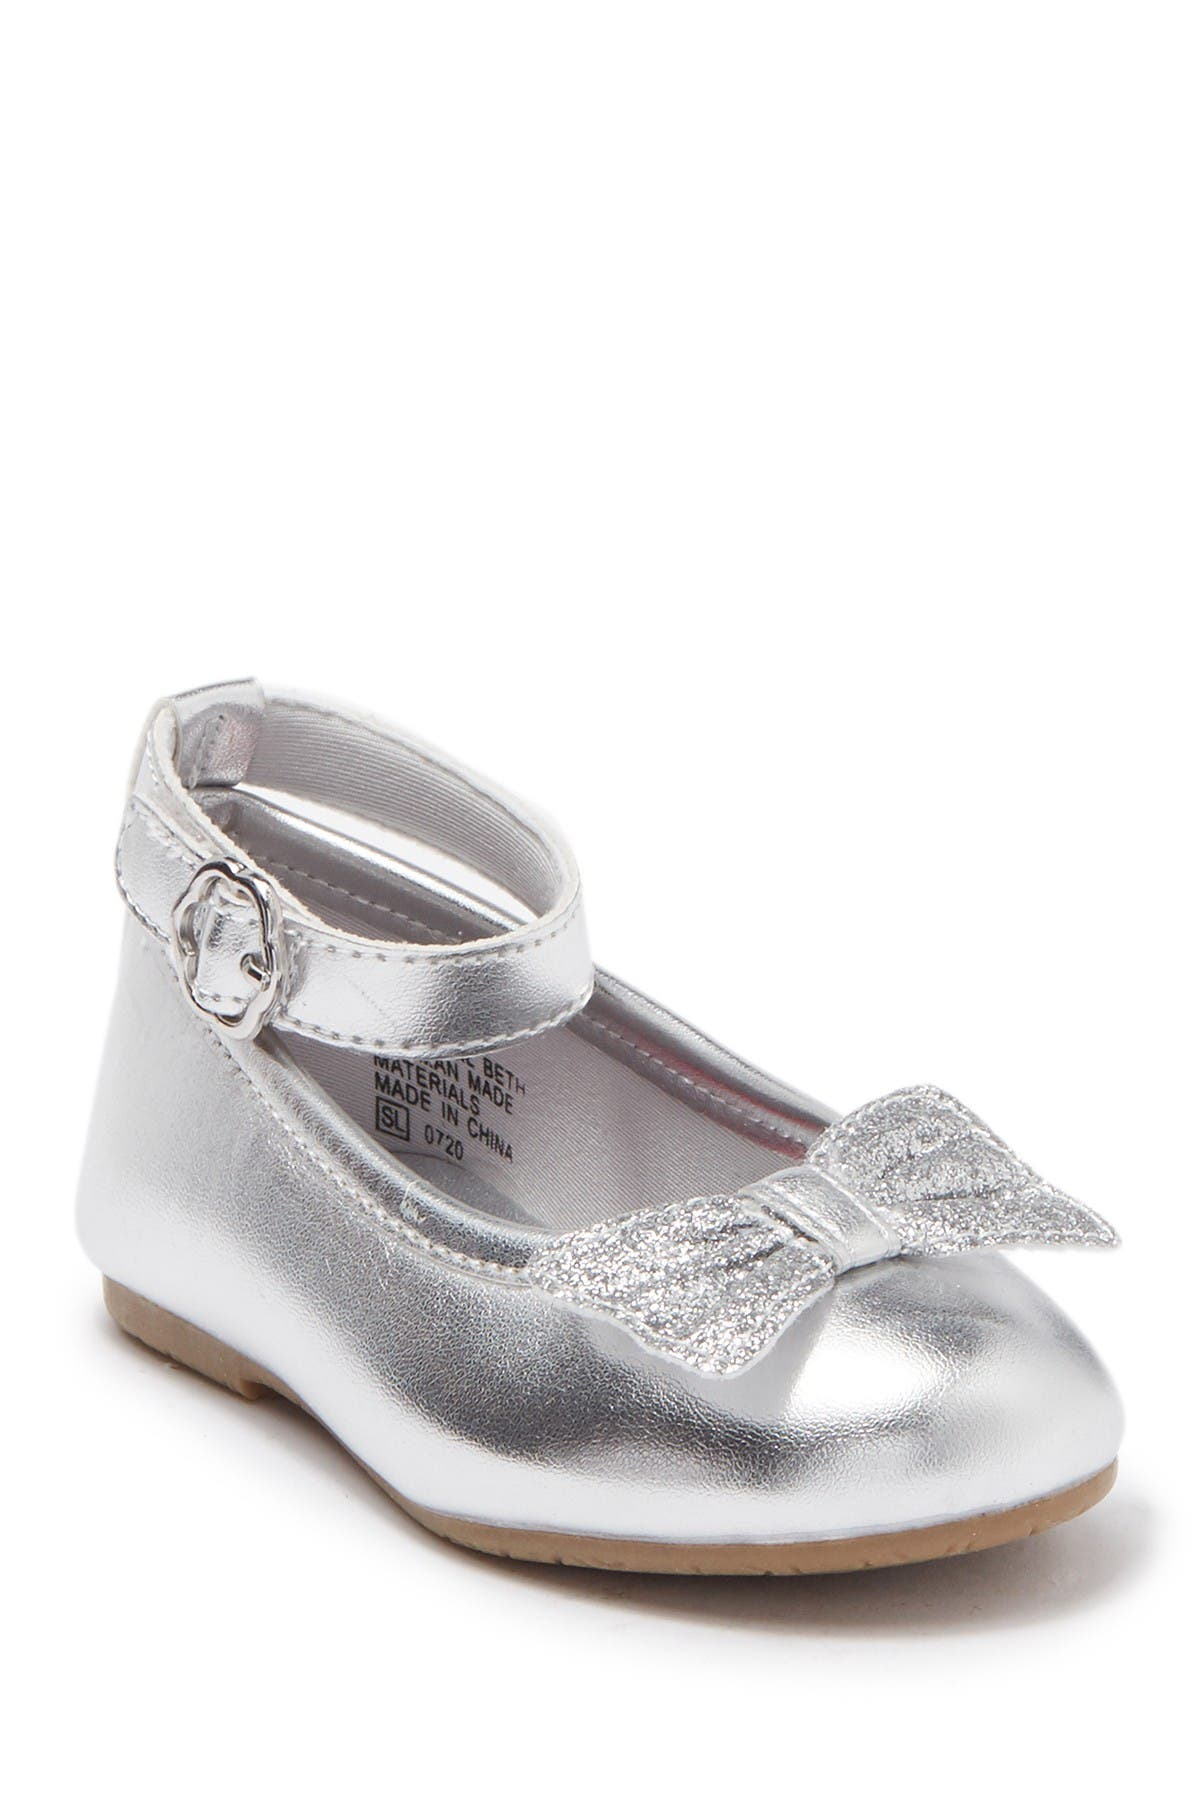 Image of Valencia Imports Lil Beth Bow Ankle Strap Ballet Flat